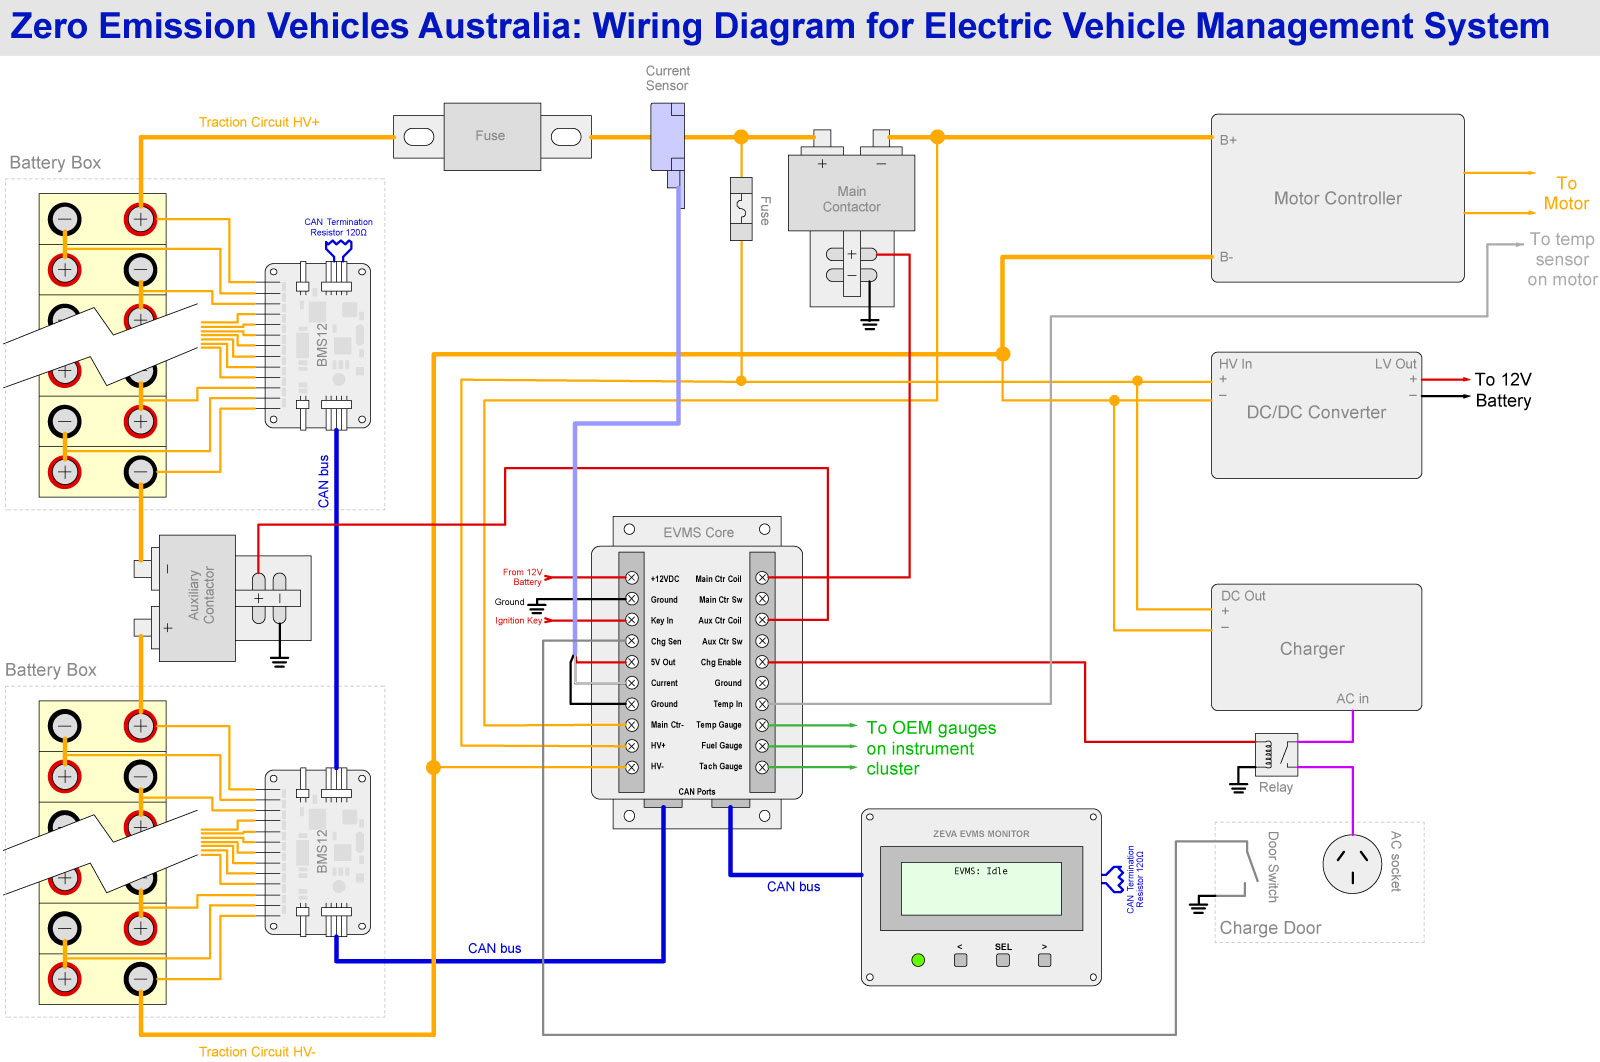 zero emission vehicles note that this diagram does not include inertia switch crash sensor which should be installed between the 12v battery and the evms core s 12v supply